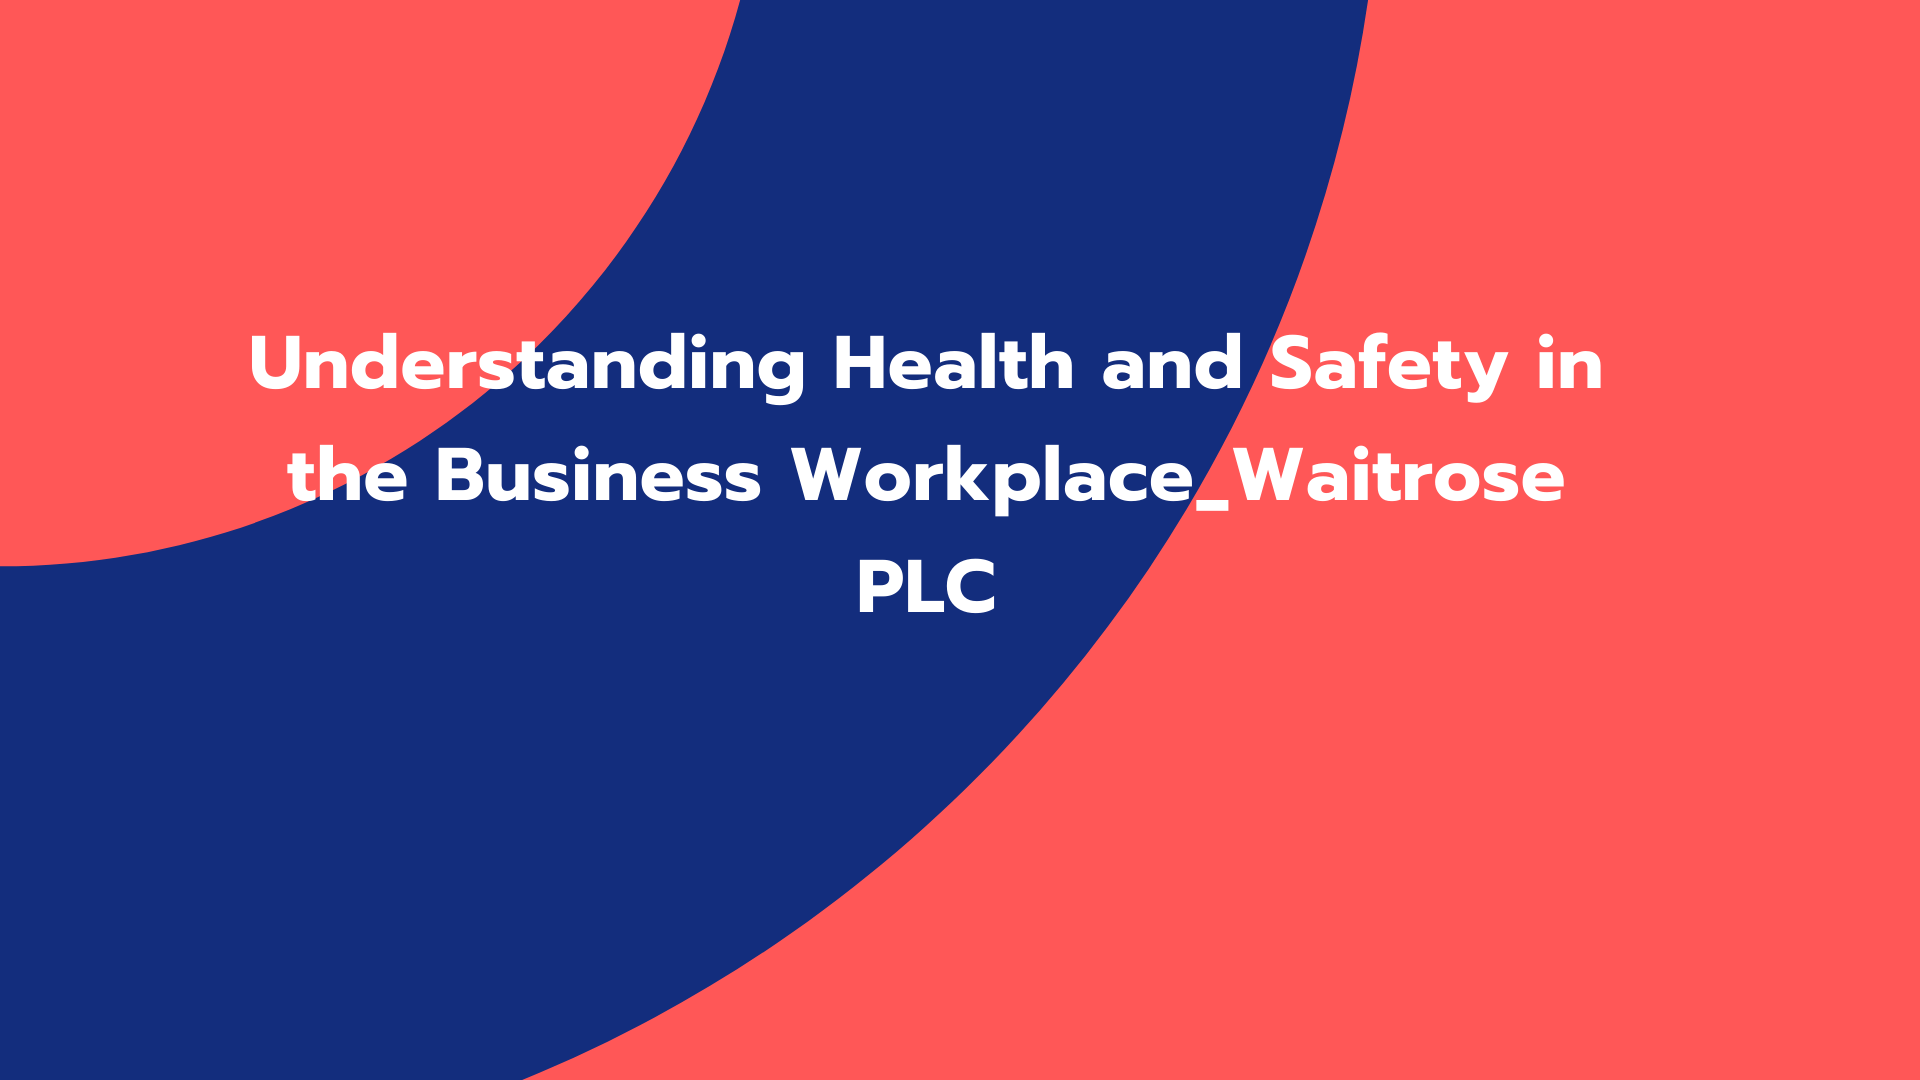 Understanding Health and Safety in the Business Workplace_Waitrose PLC